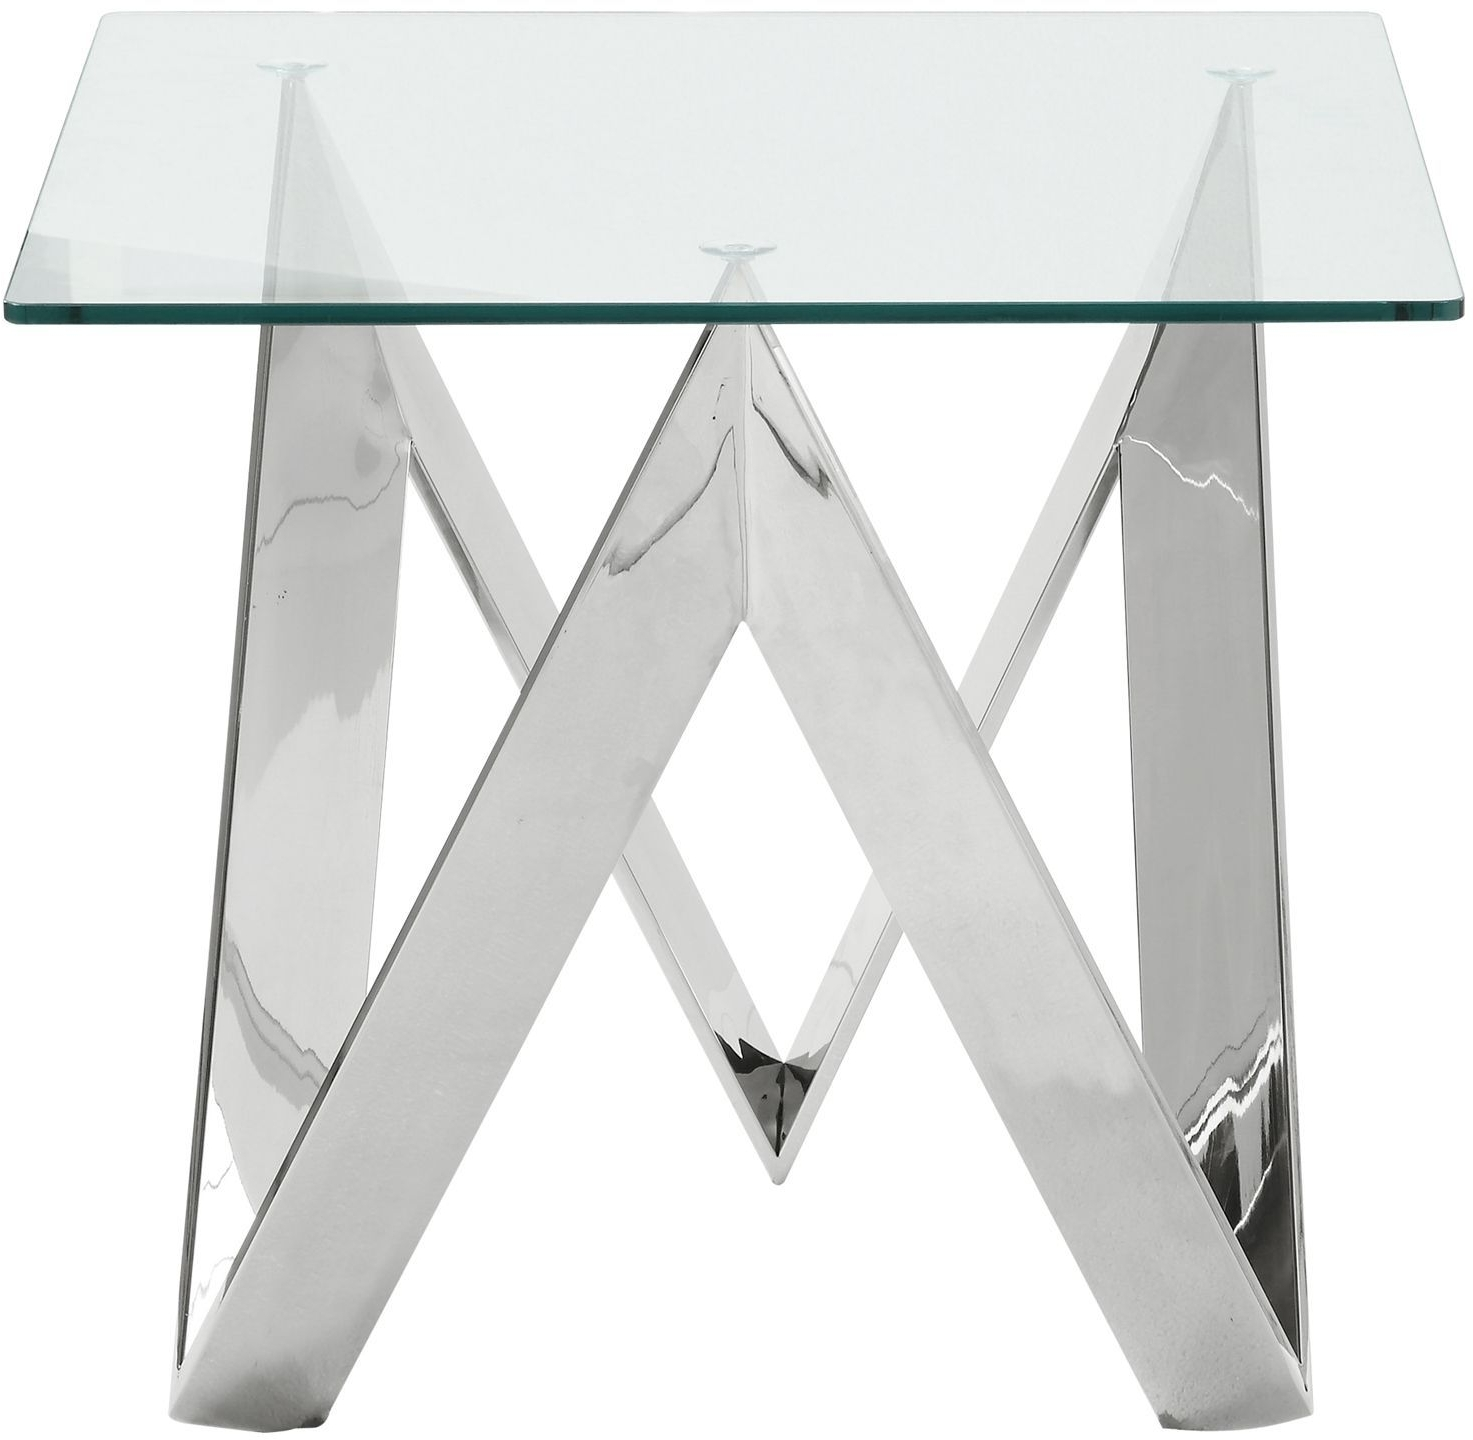 Carly Triangle Tables Regarding Most Recently Released Widforss Antique Silver Dining Table From Acme (View 8 of 25)